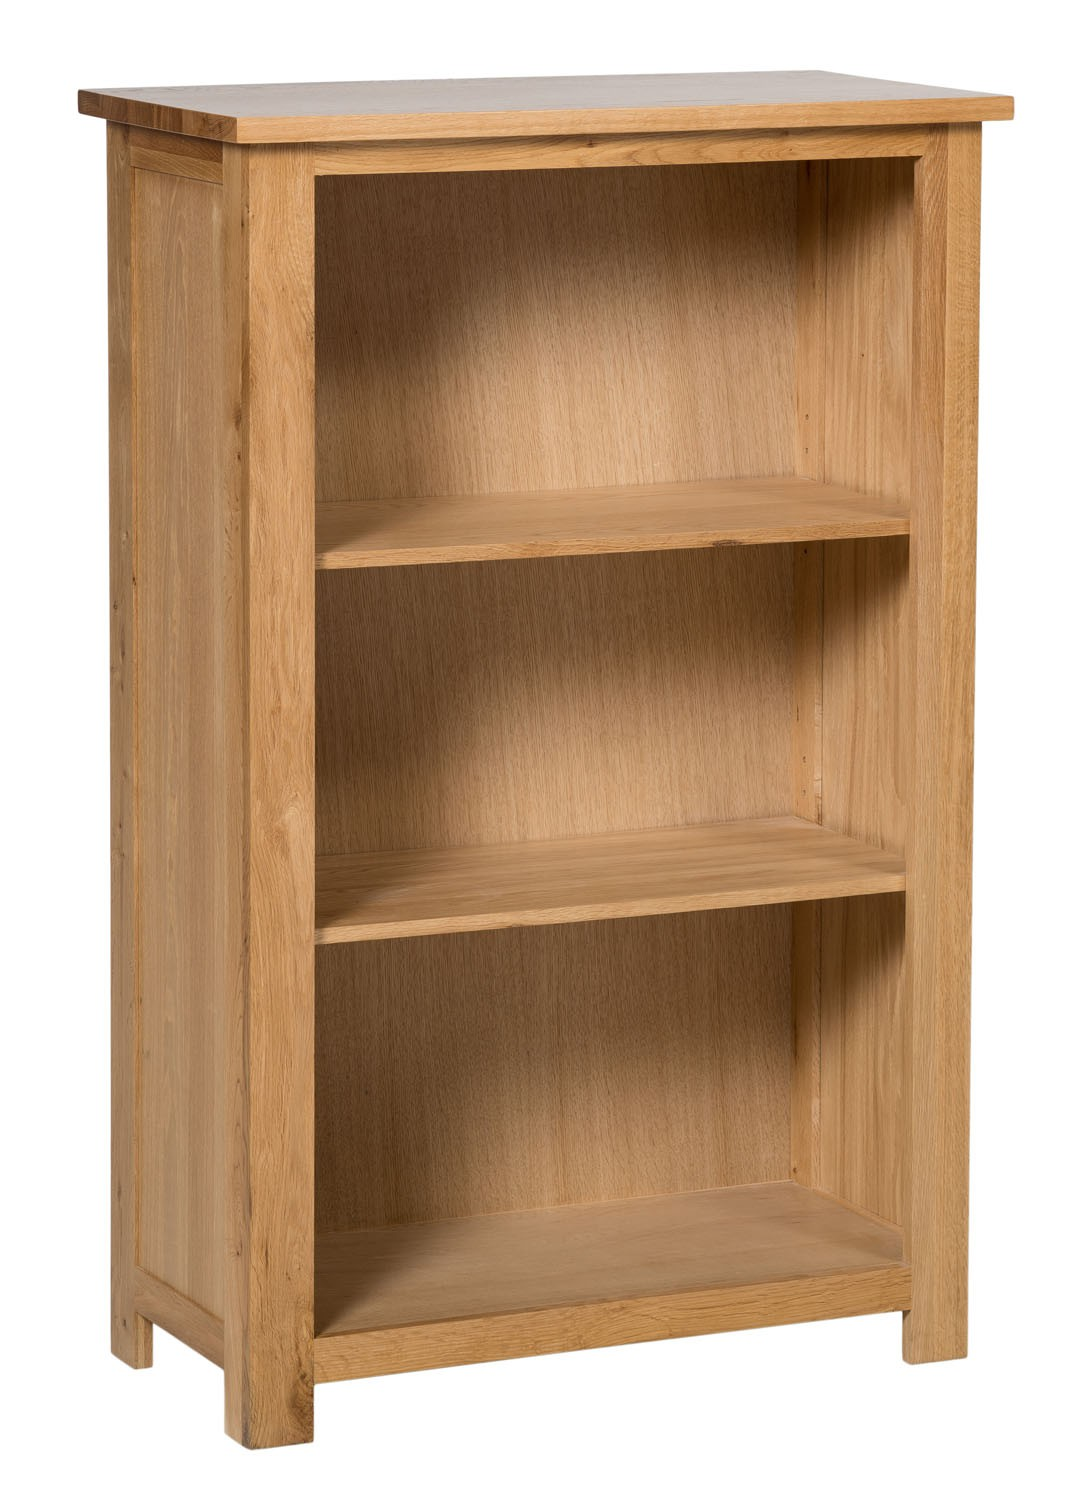 Waverly Oak Small Wide Bookcase with 3 Shelves | Hallowood